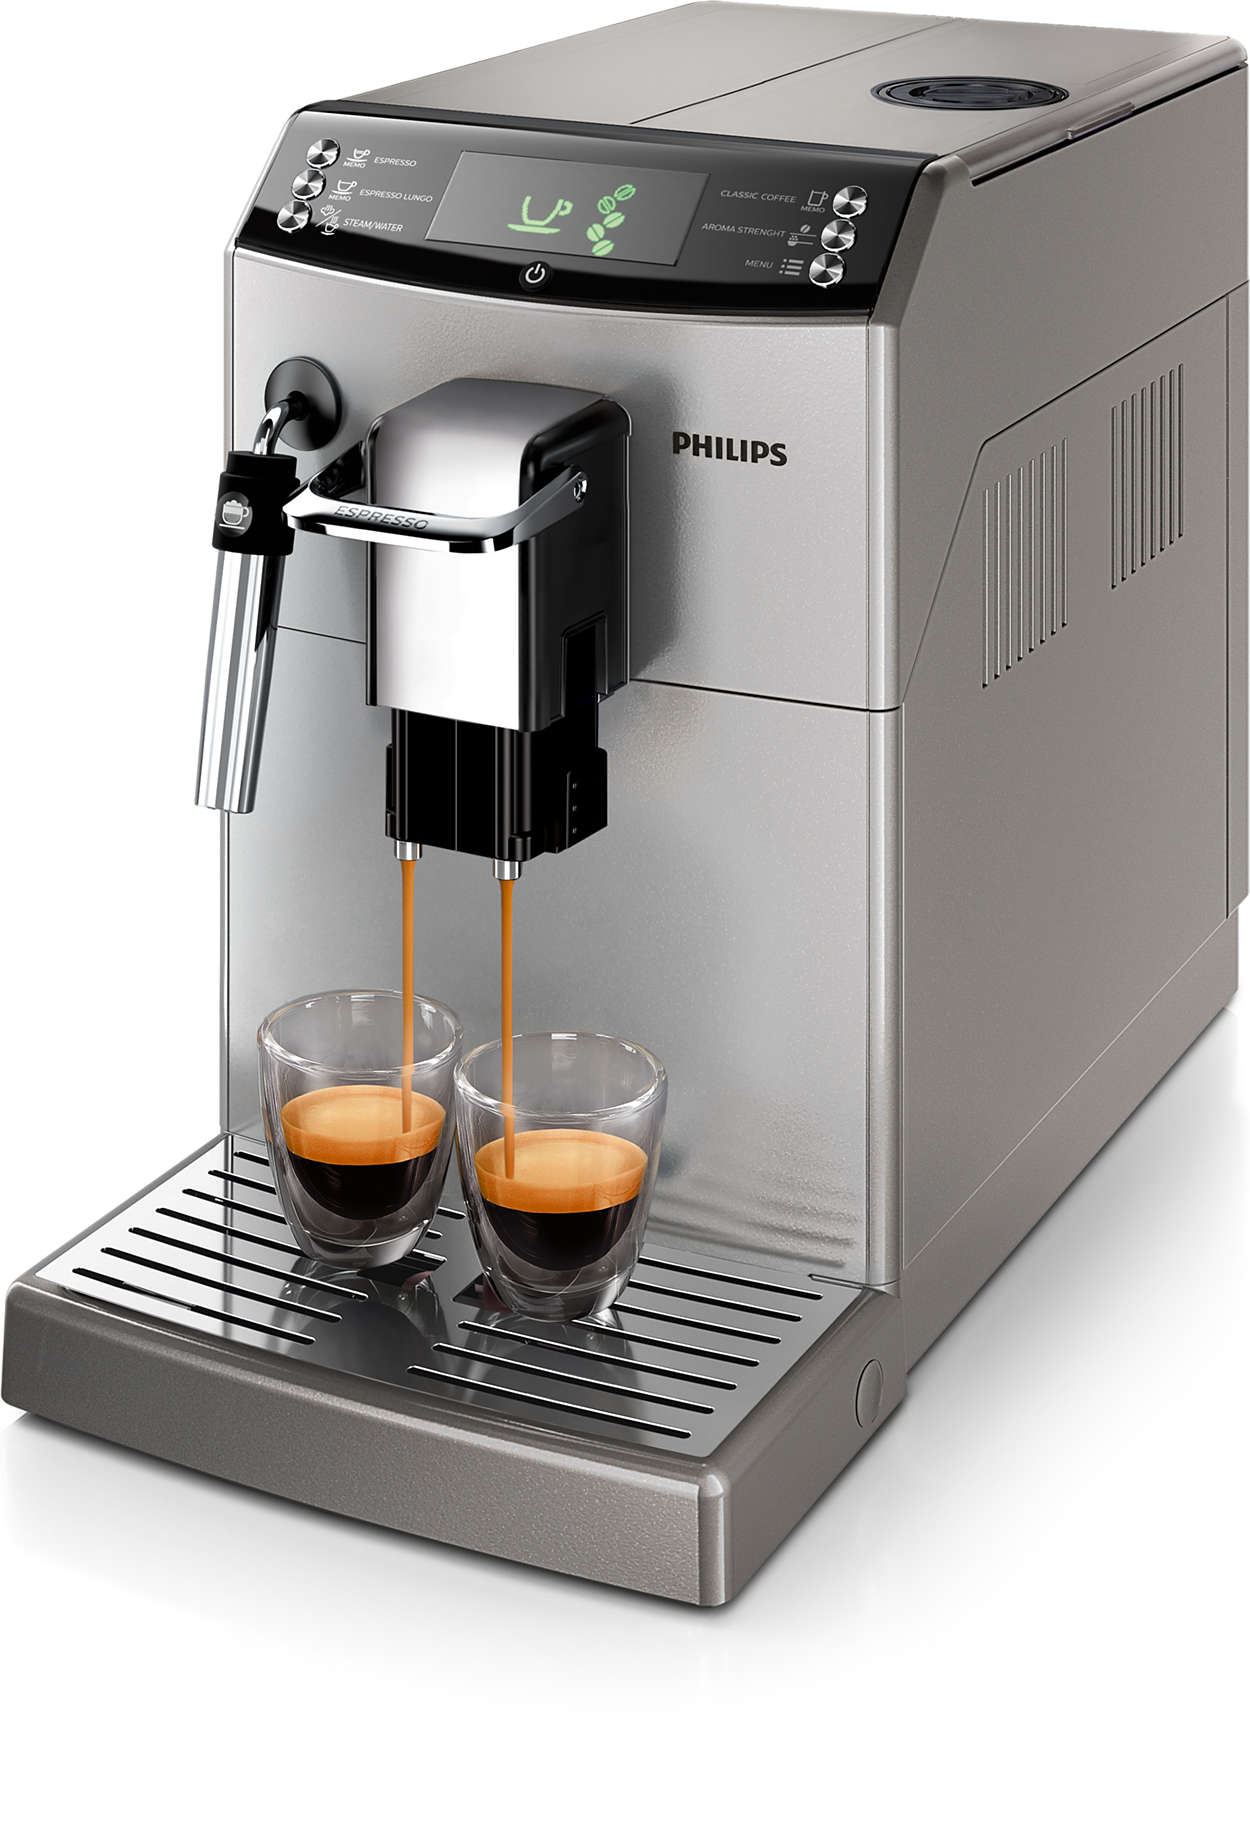 4000 series machine espresso super automatique hd8841 11 philips. Black Bedroom Furniture Sets. Home Design Ideas